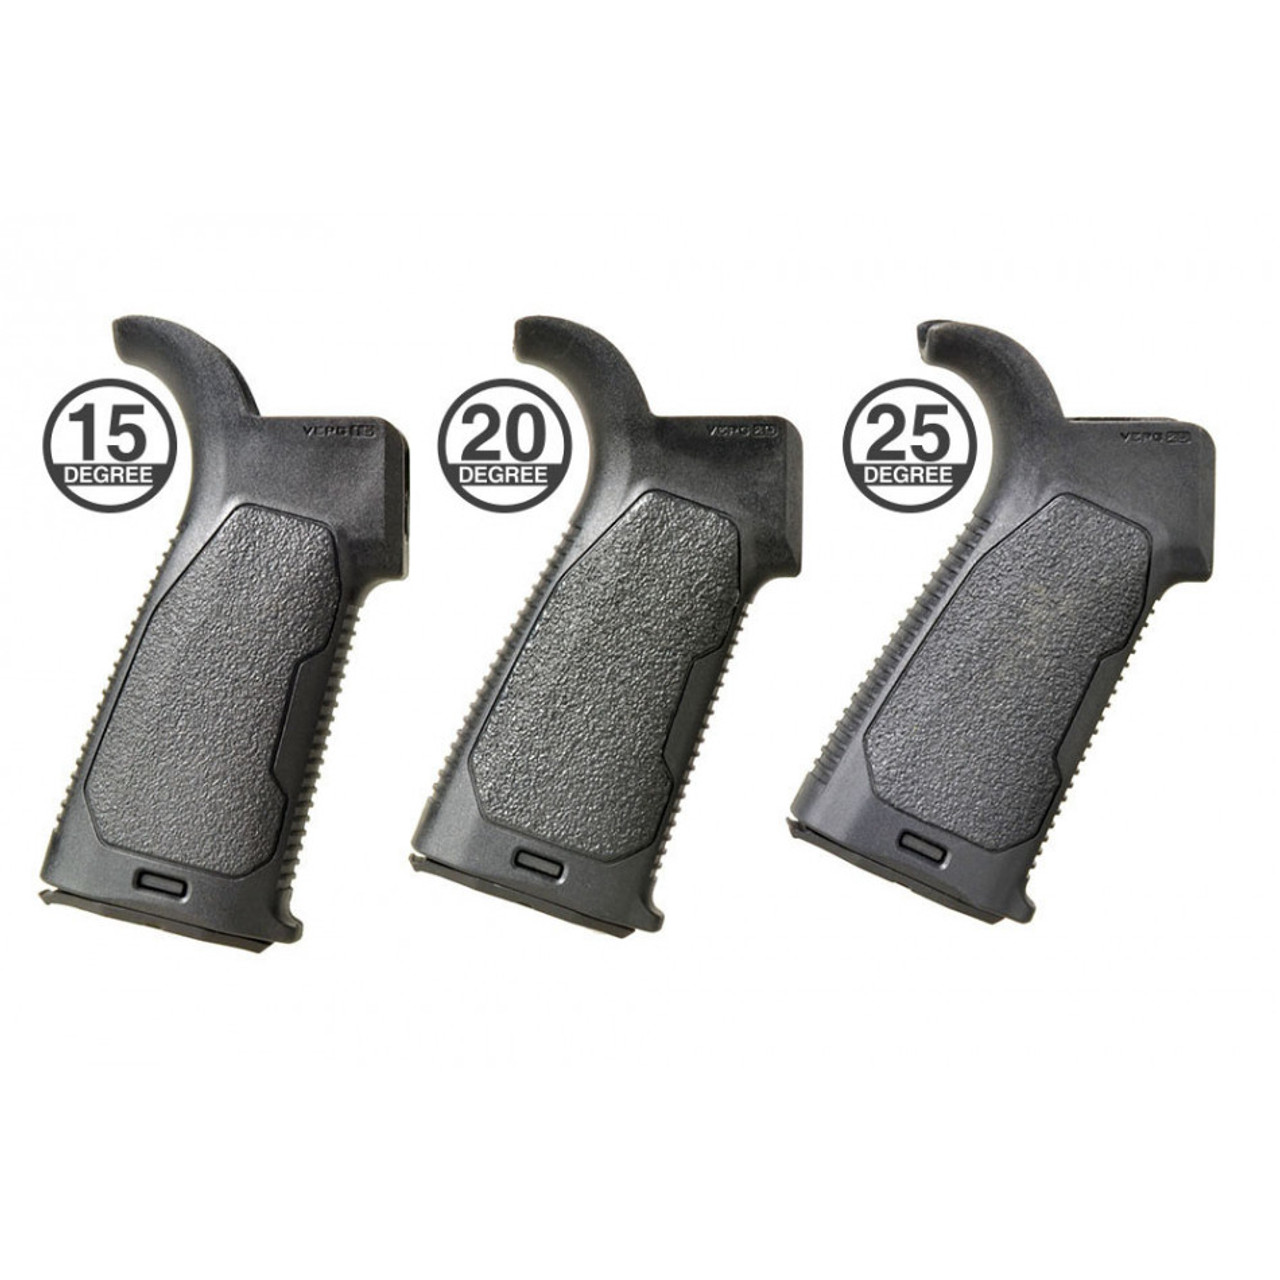 Strike Industries Viper Enhanced Pistol Grip Group